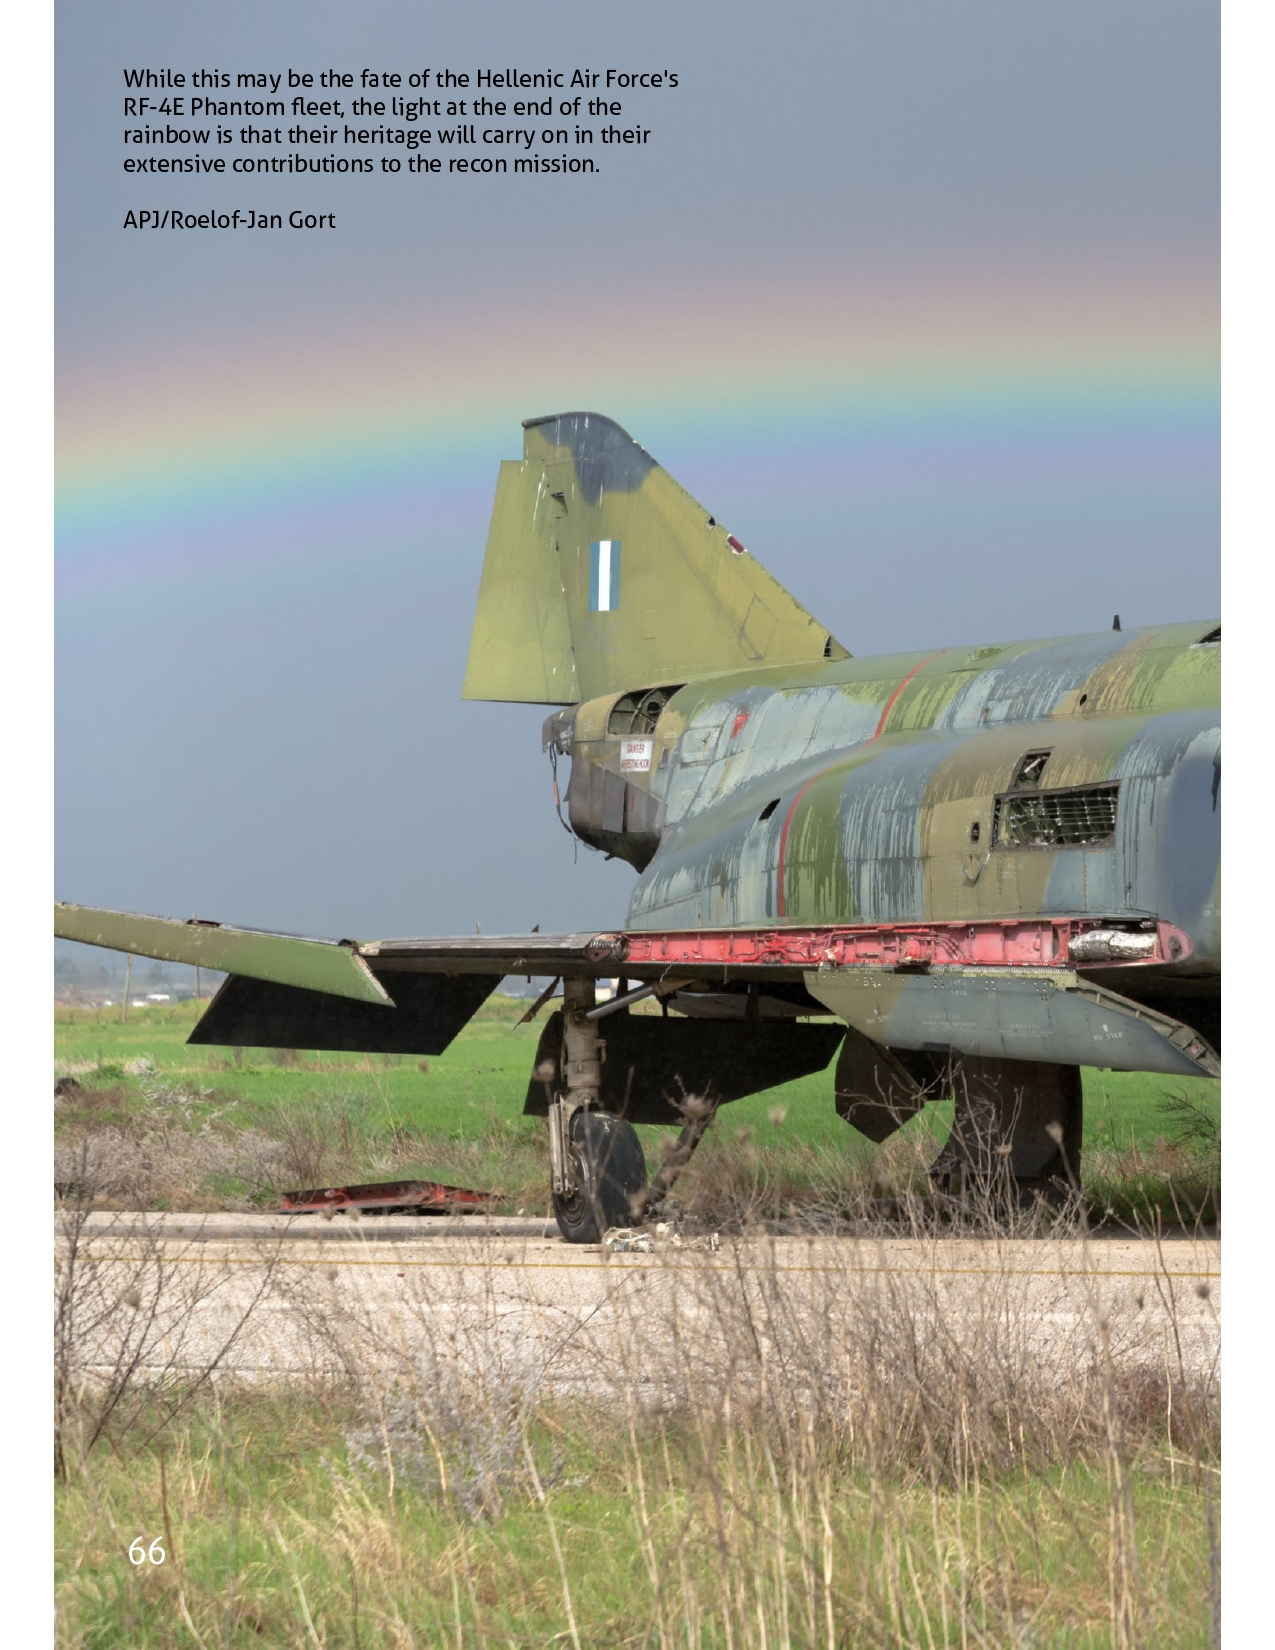 Aviation+Photojournal+January+-+April+2018-3_page-0066